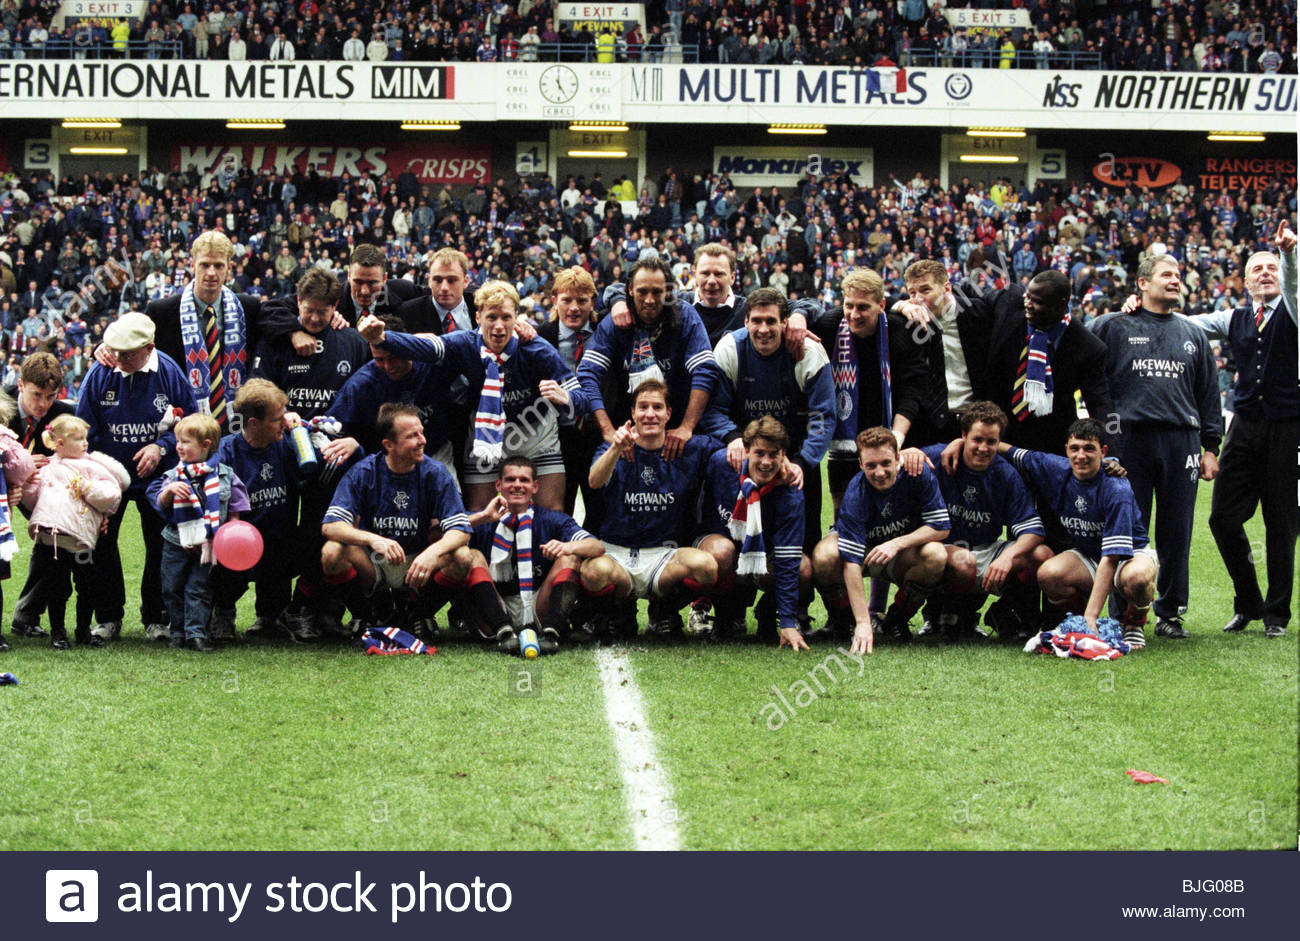 16/04/95 BELL'S PREMIER DIVISION RANGERS V HIBS (3-1) IBROX - GLASGOW The Rangers players celebrate after clinching - Stock Image